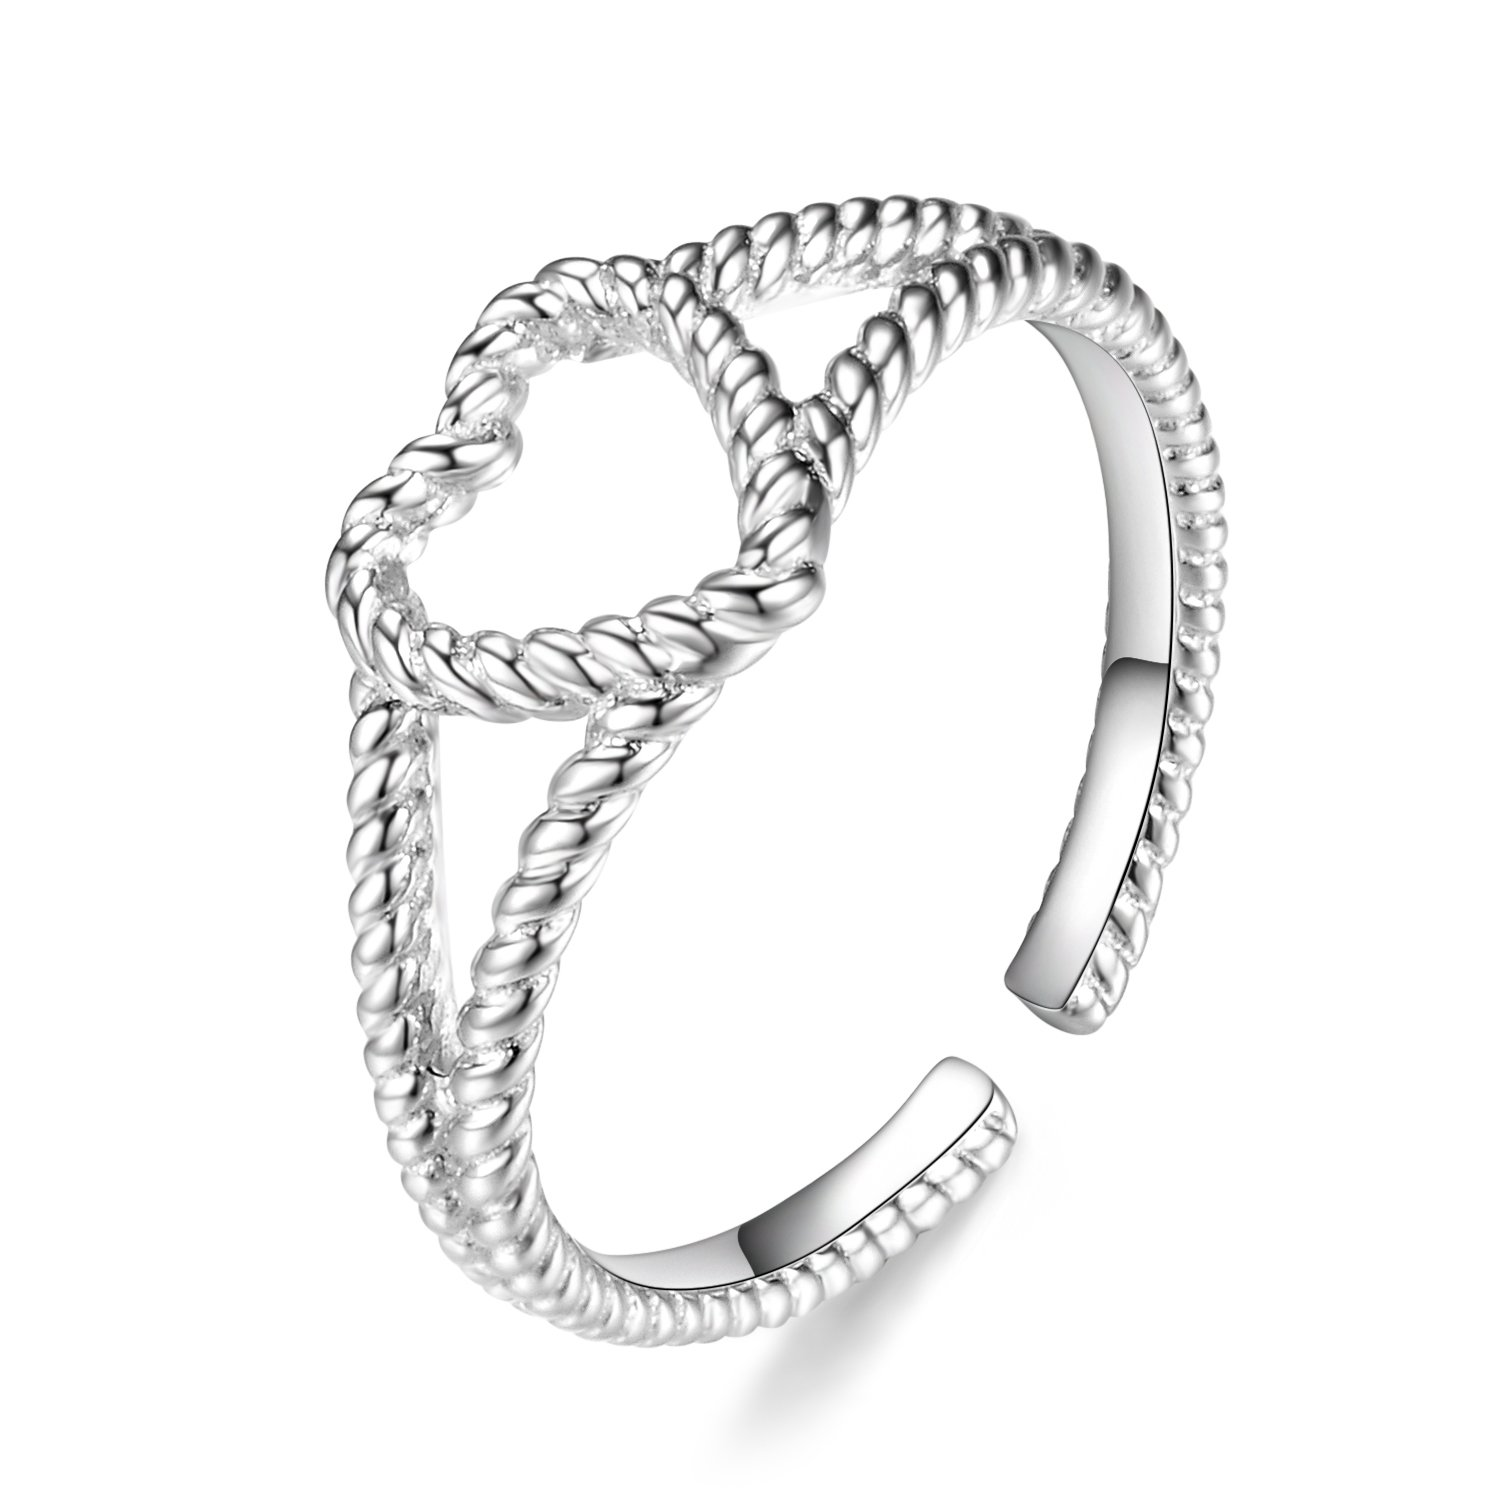 Sterling Silver Eternity Rope Ring Resizable Twisted Love Heart Wedding Anniversary Valentine Promise Rings Women, Size 6.5